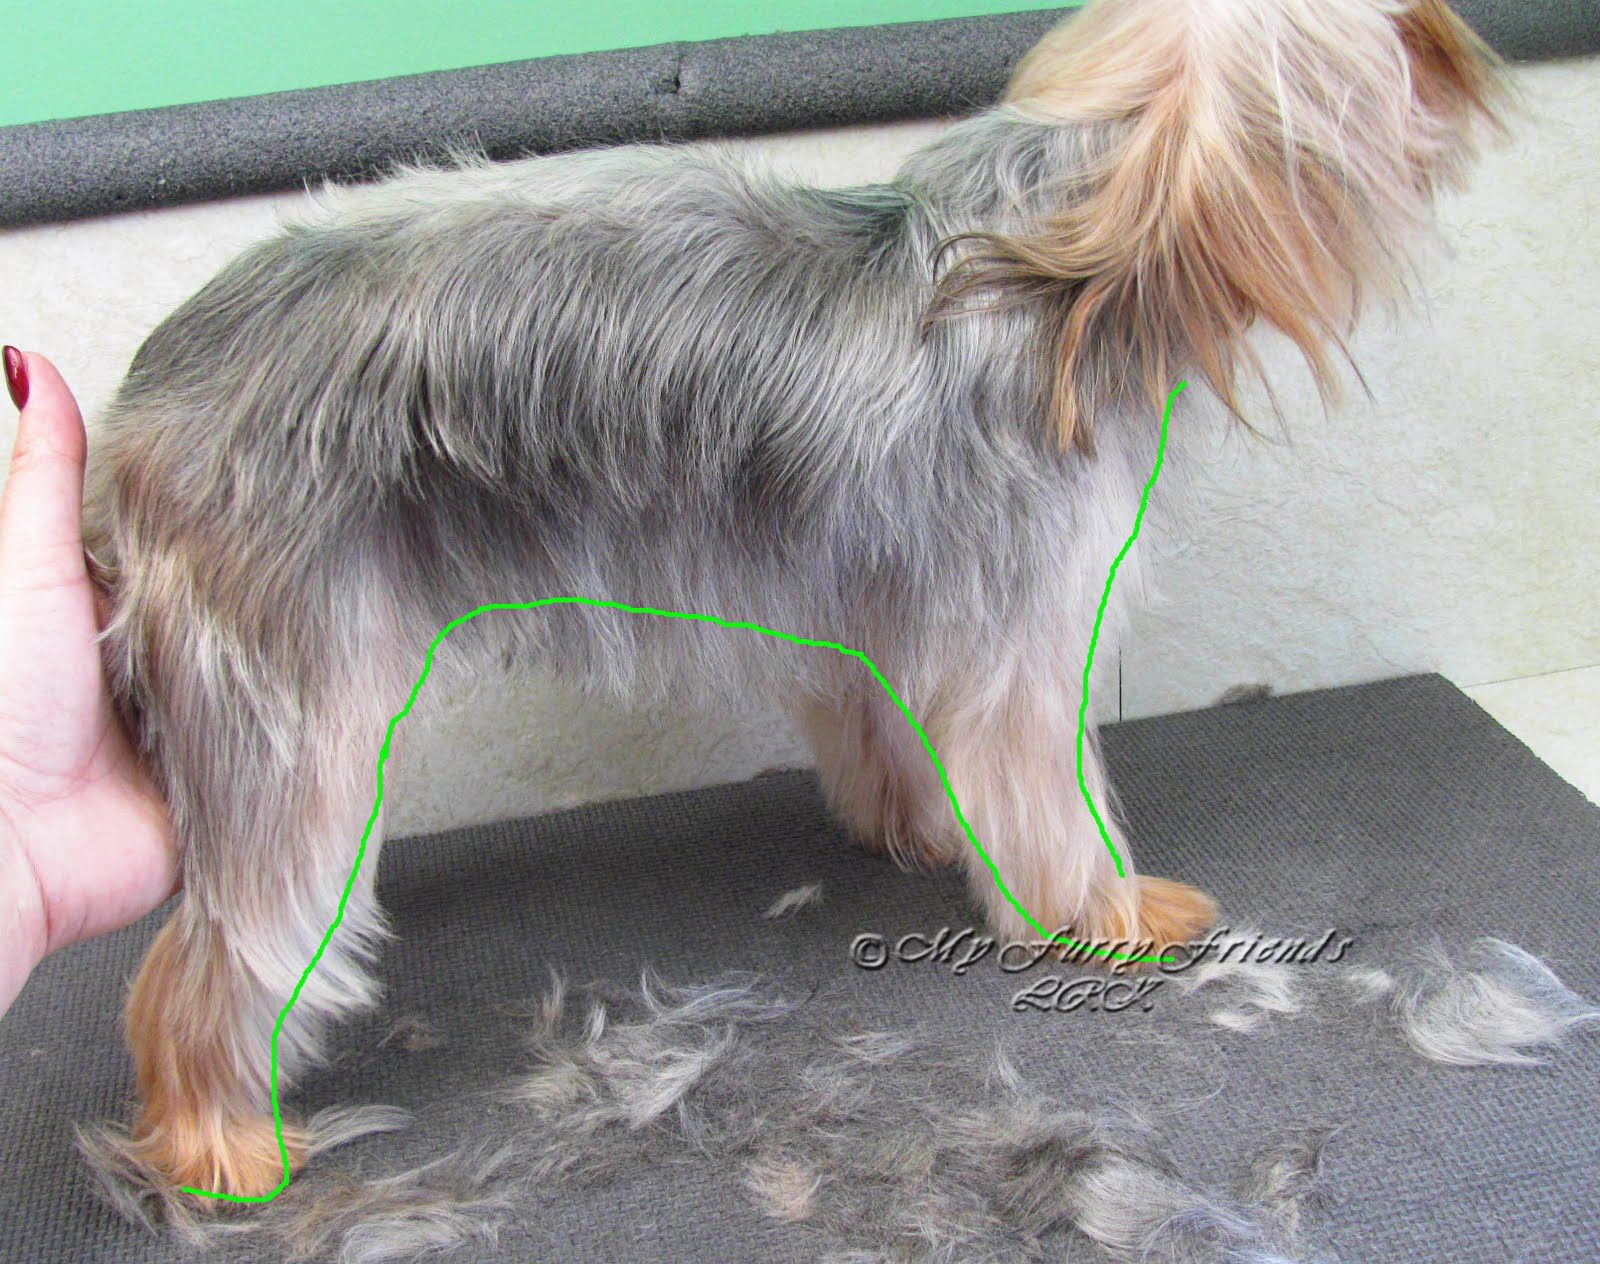 yorkies come in so many different sizes and body shapes. they also